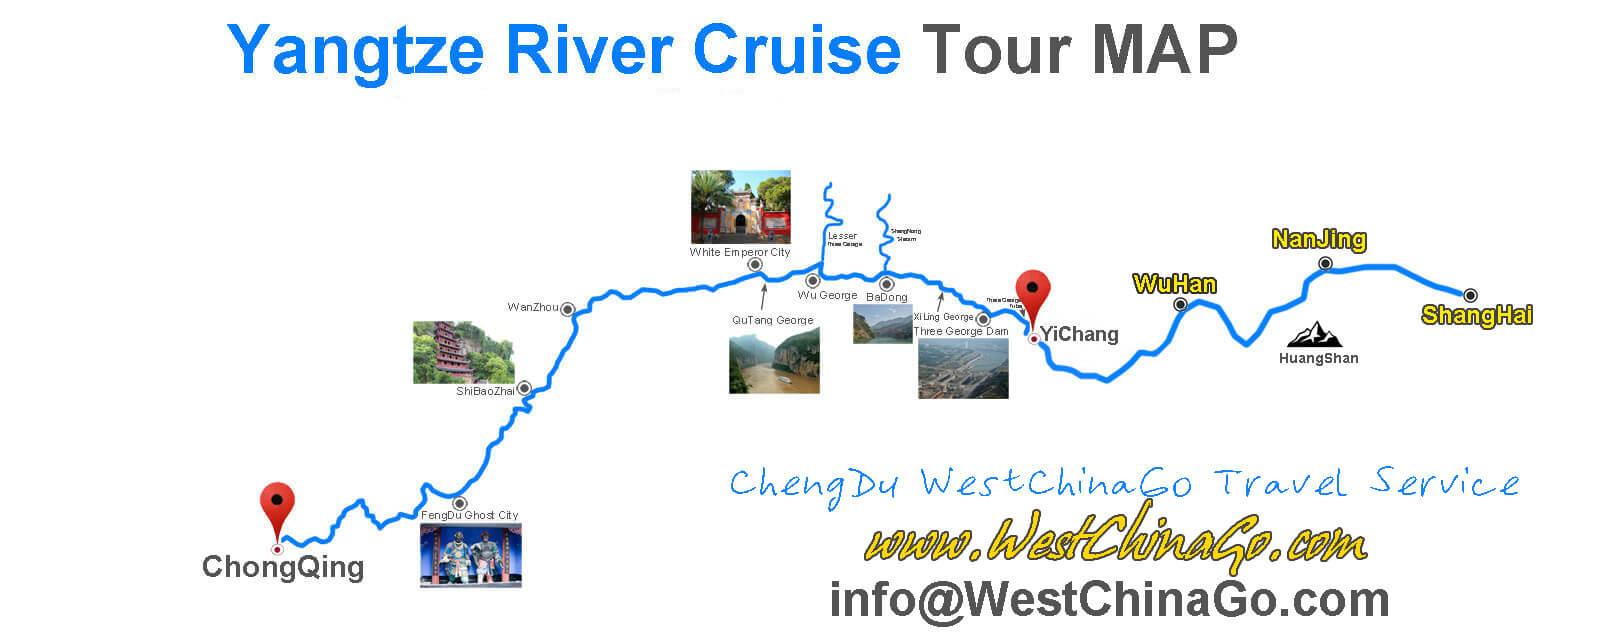 yangtze river cruise tour map